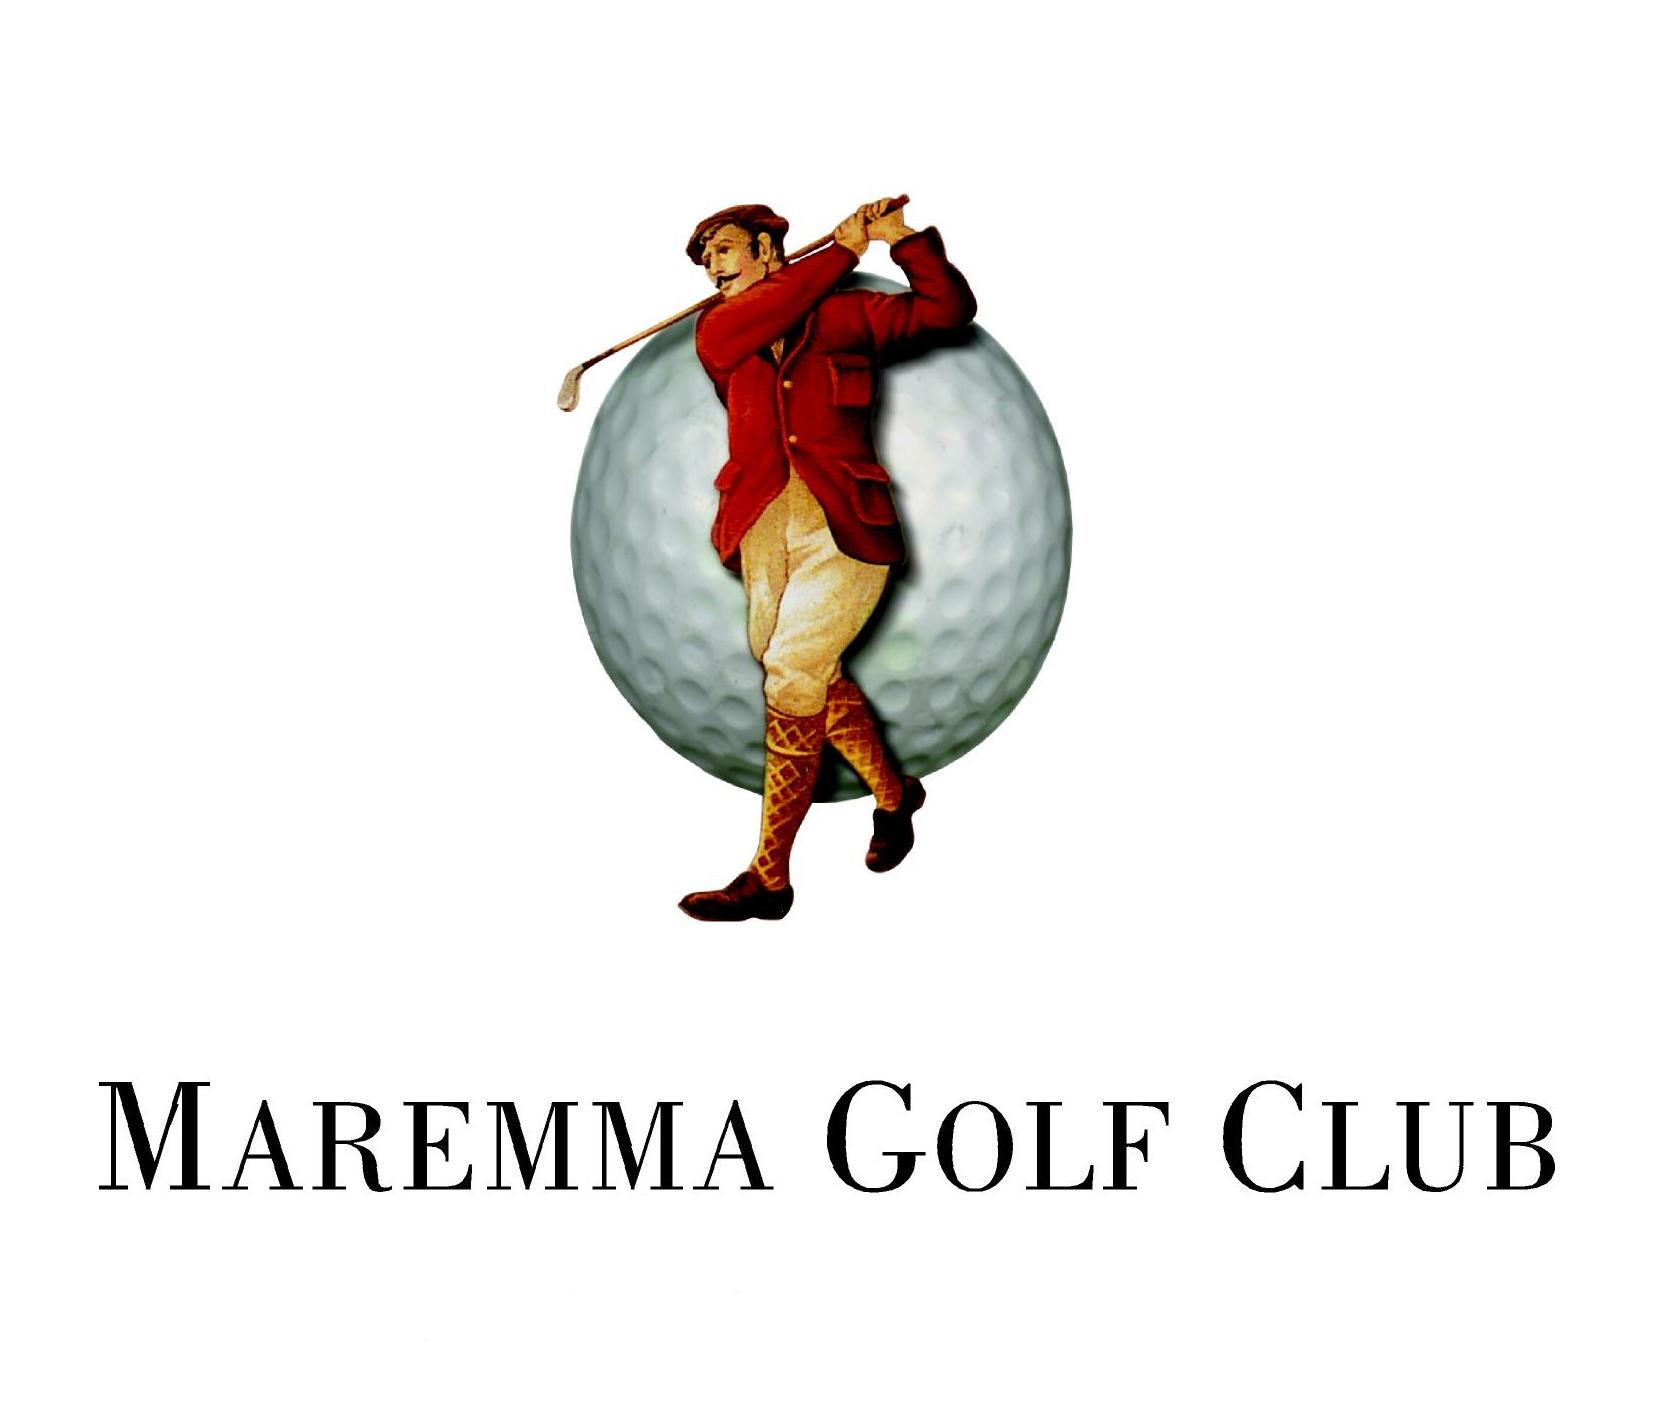 logo A.S.D. Maremma Golf Club